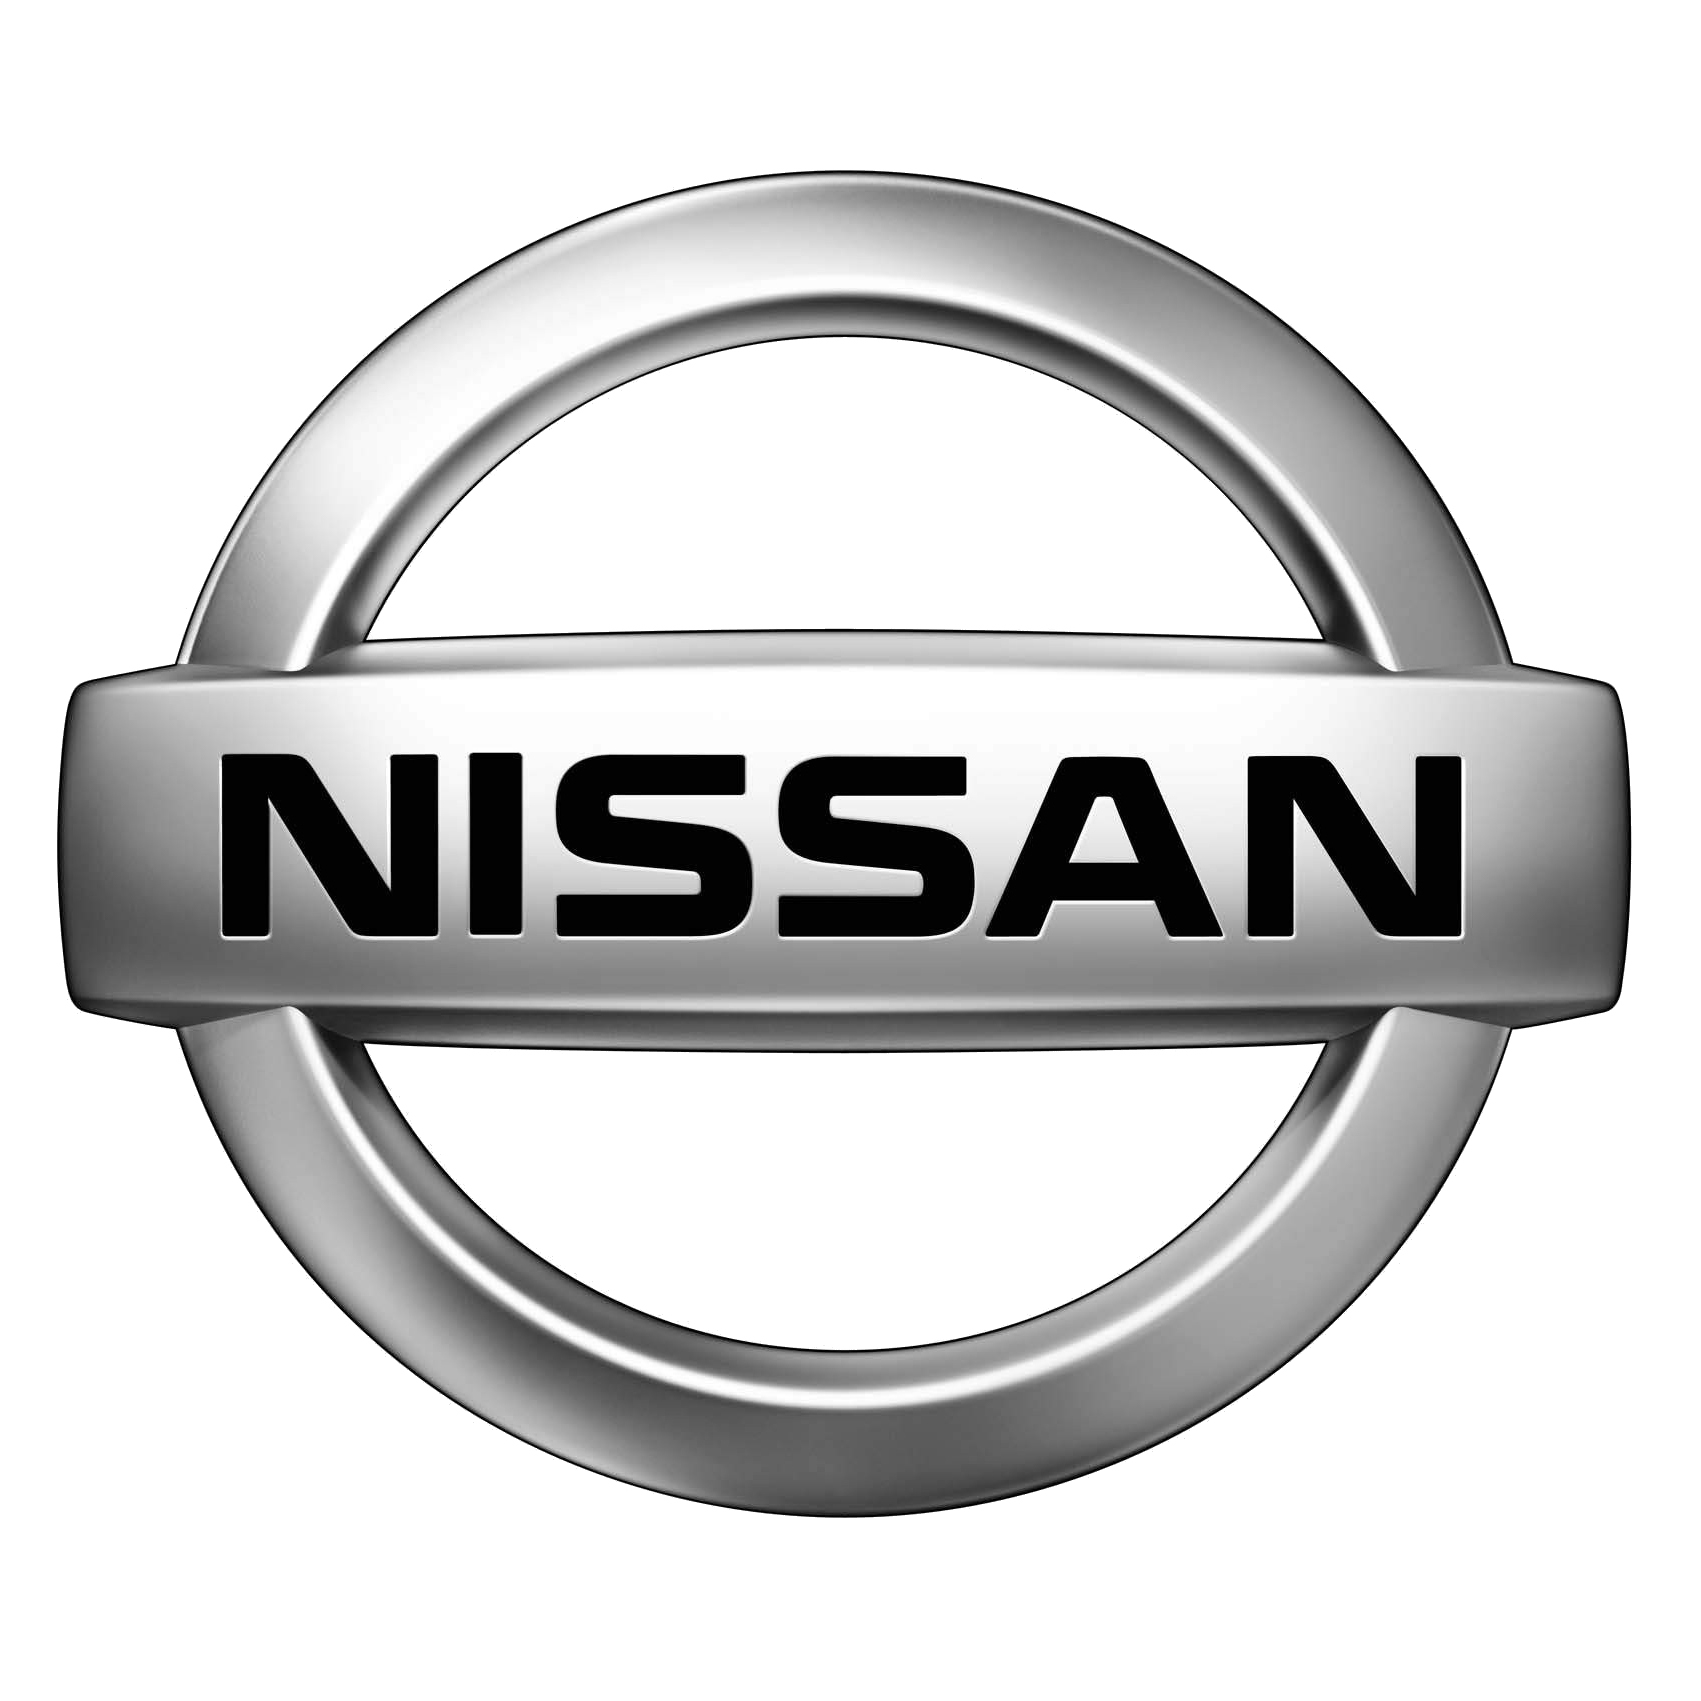 Nissan Automotive showroom